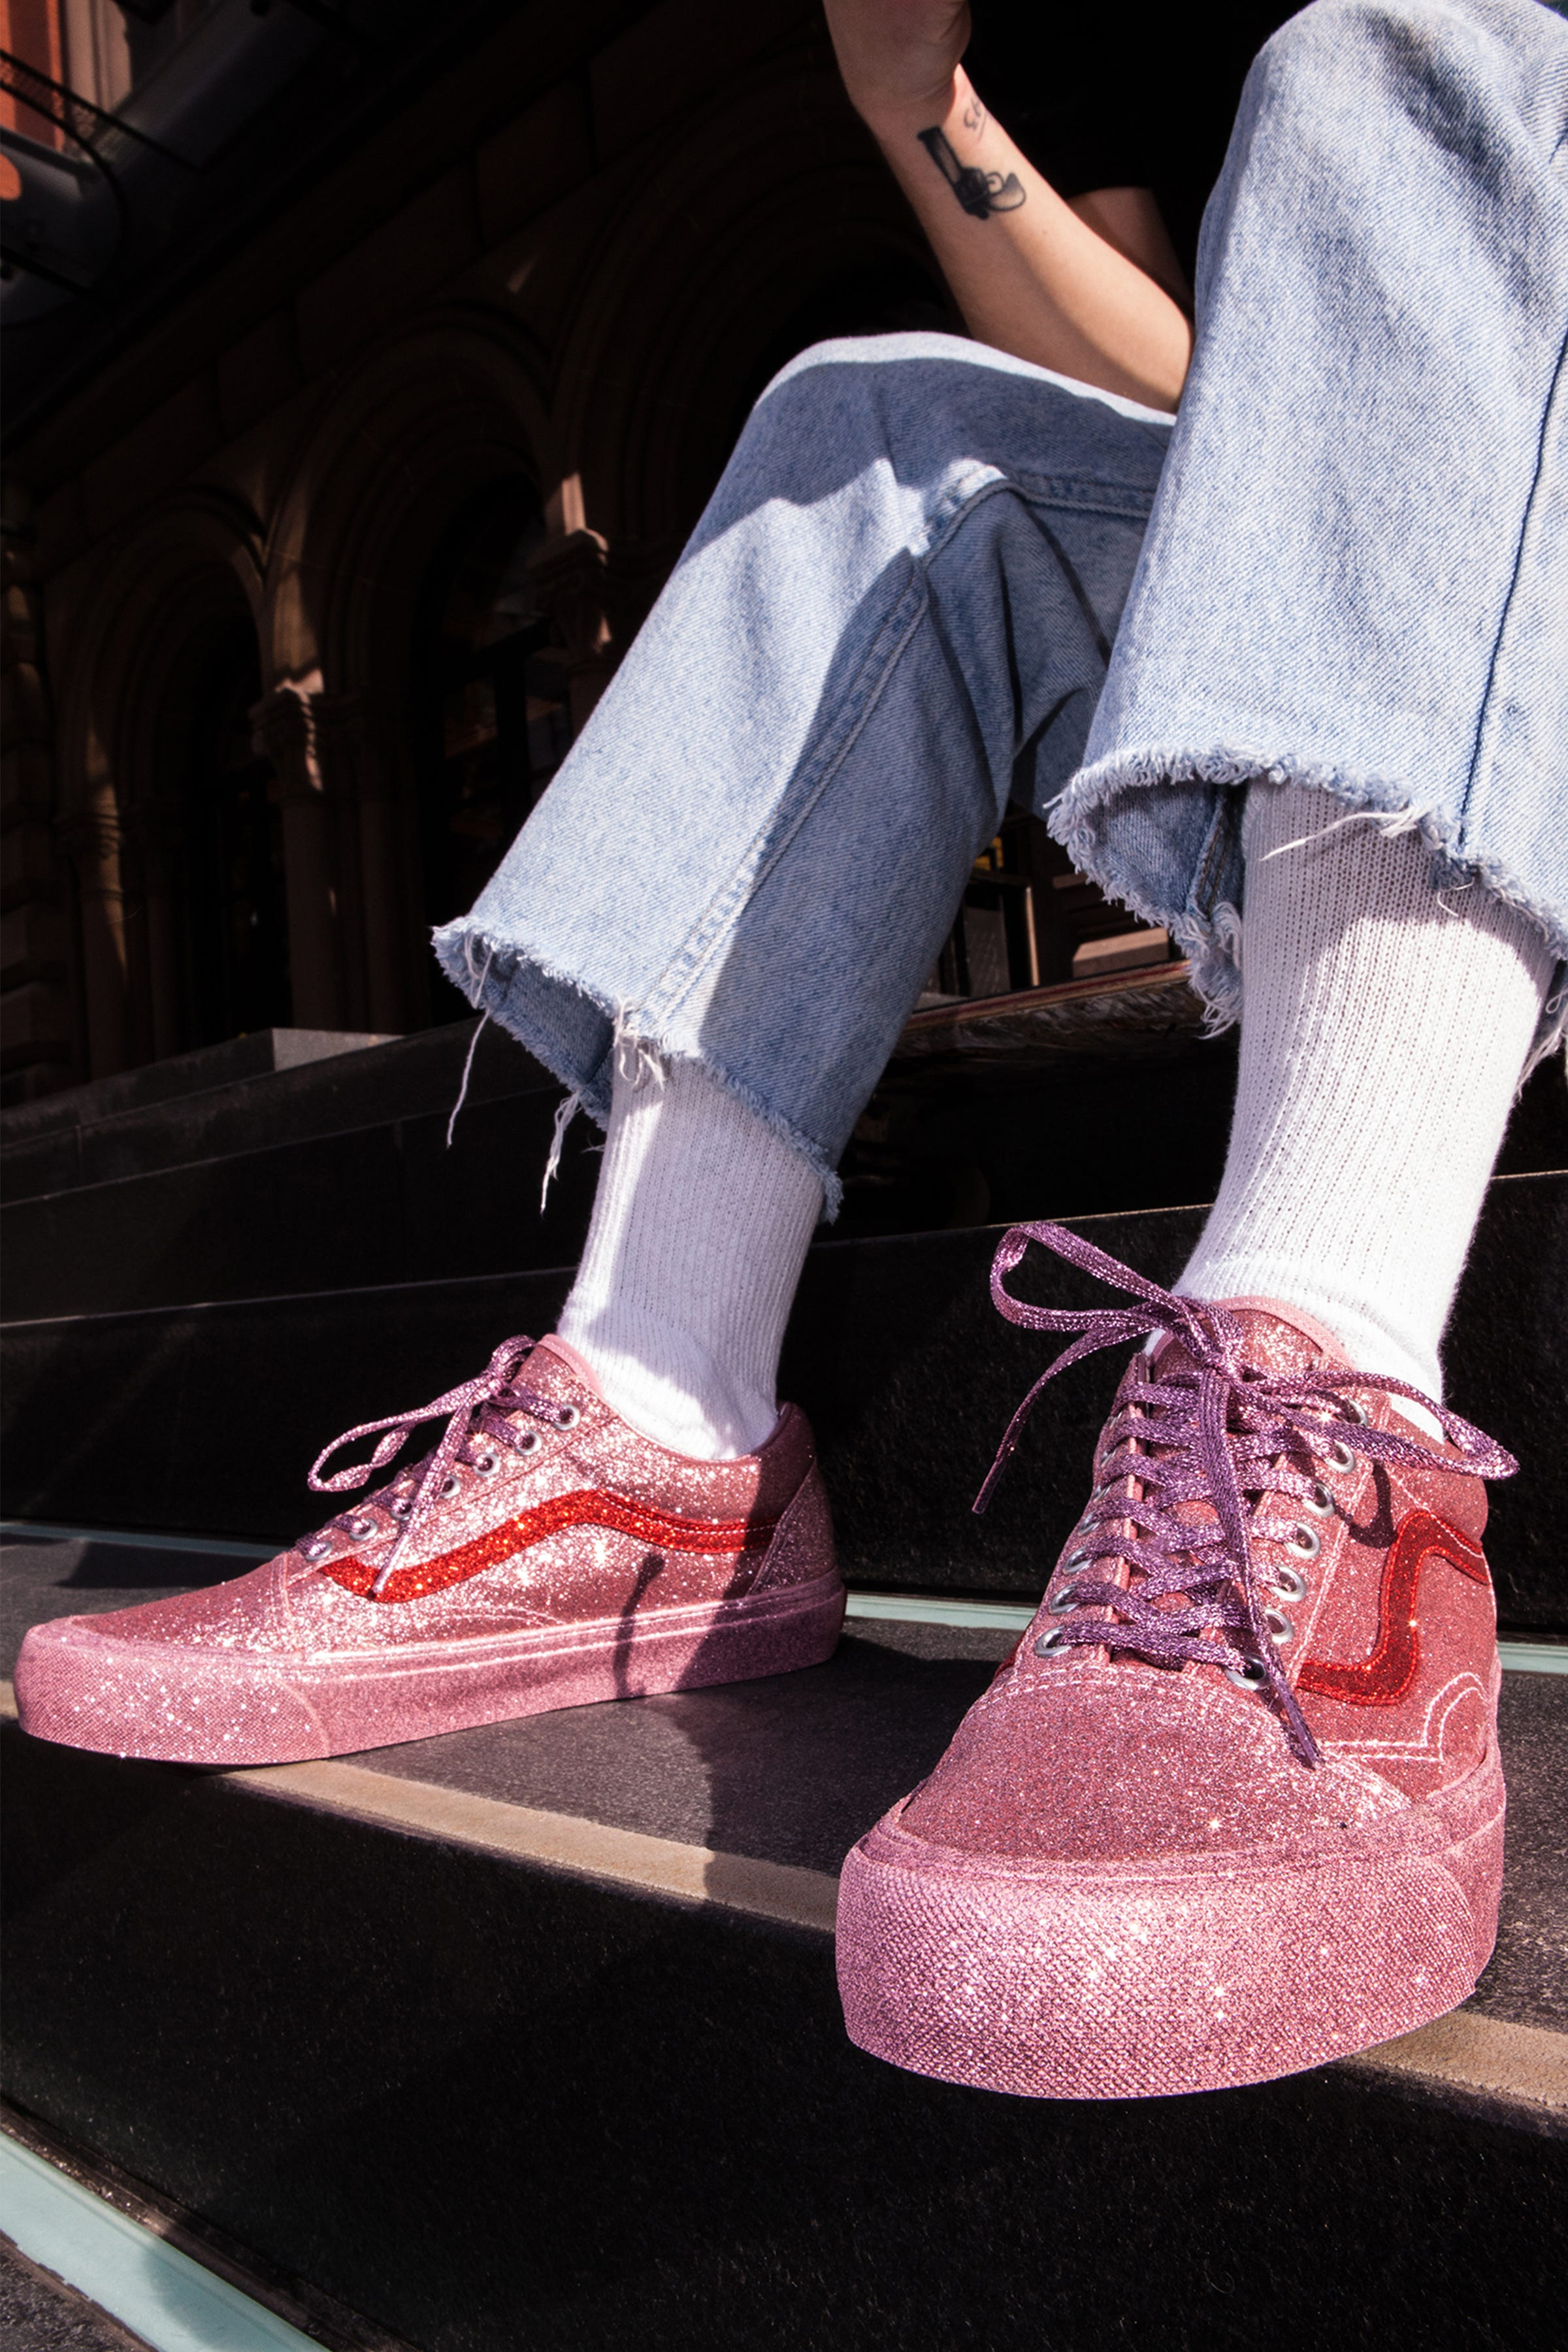 Vans' Outrageously Sparkly Sneakers Are Back!